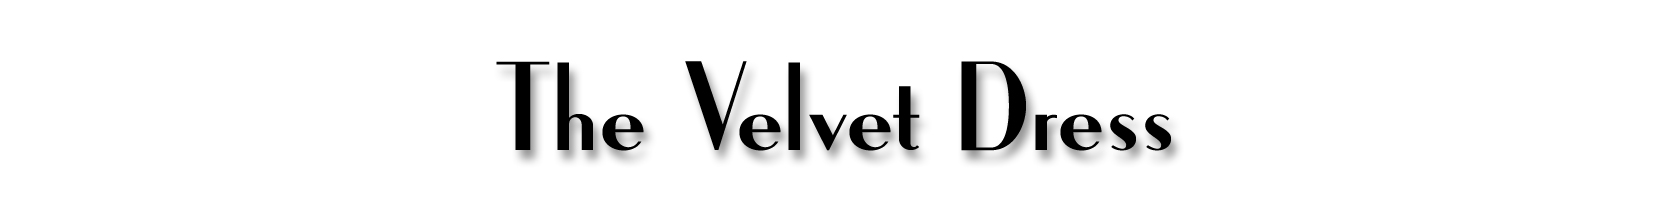 The Velvet Dress Blog